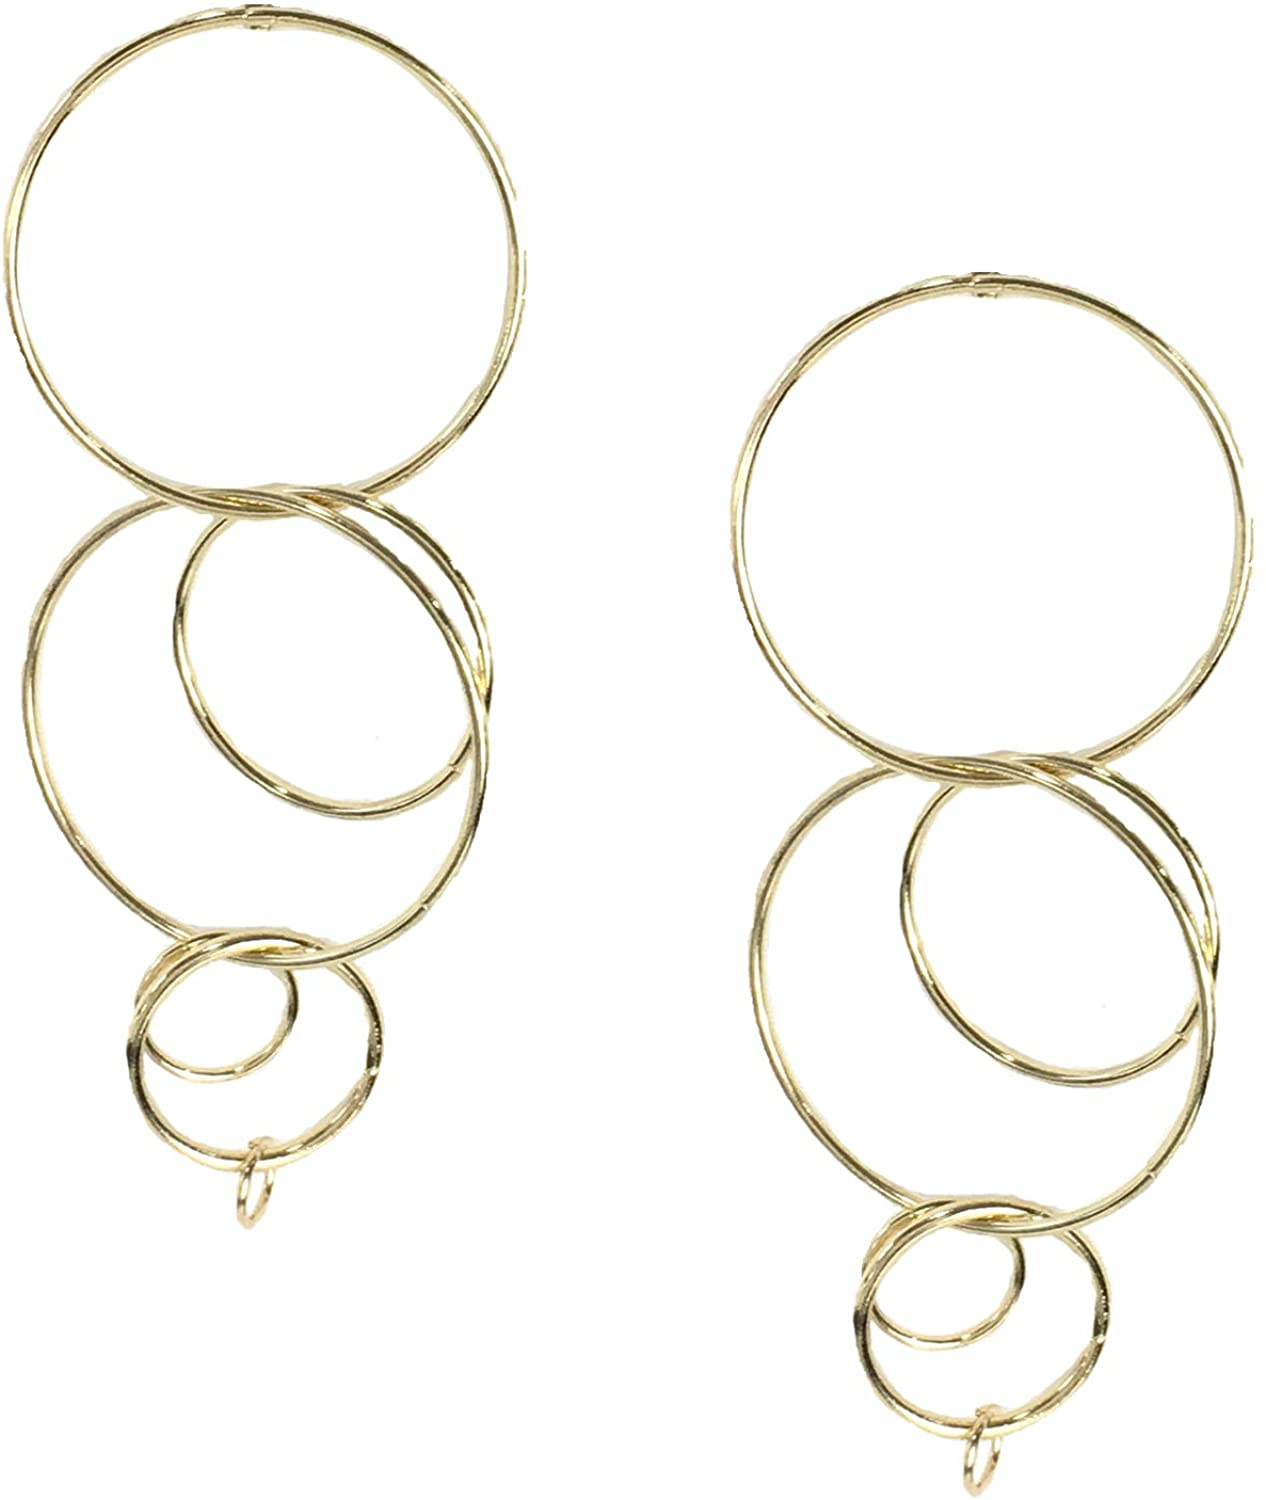 B Jewelry Collection Clique Interlocking Circle Drop Earrings, Golden